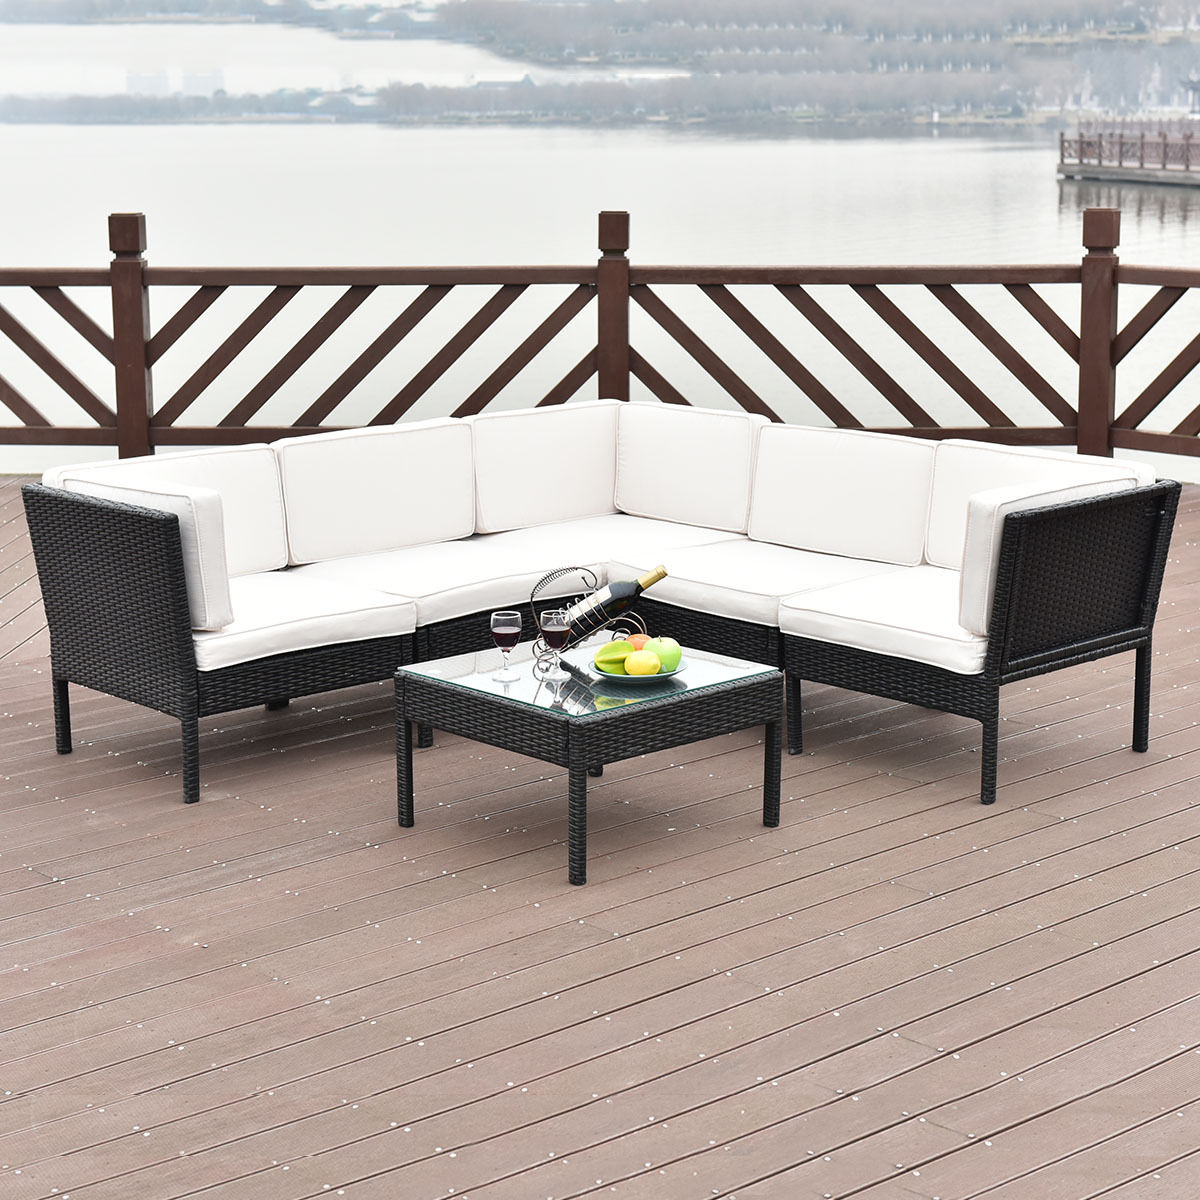 comfort outdoor and design furniture wicker set patio